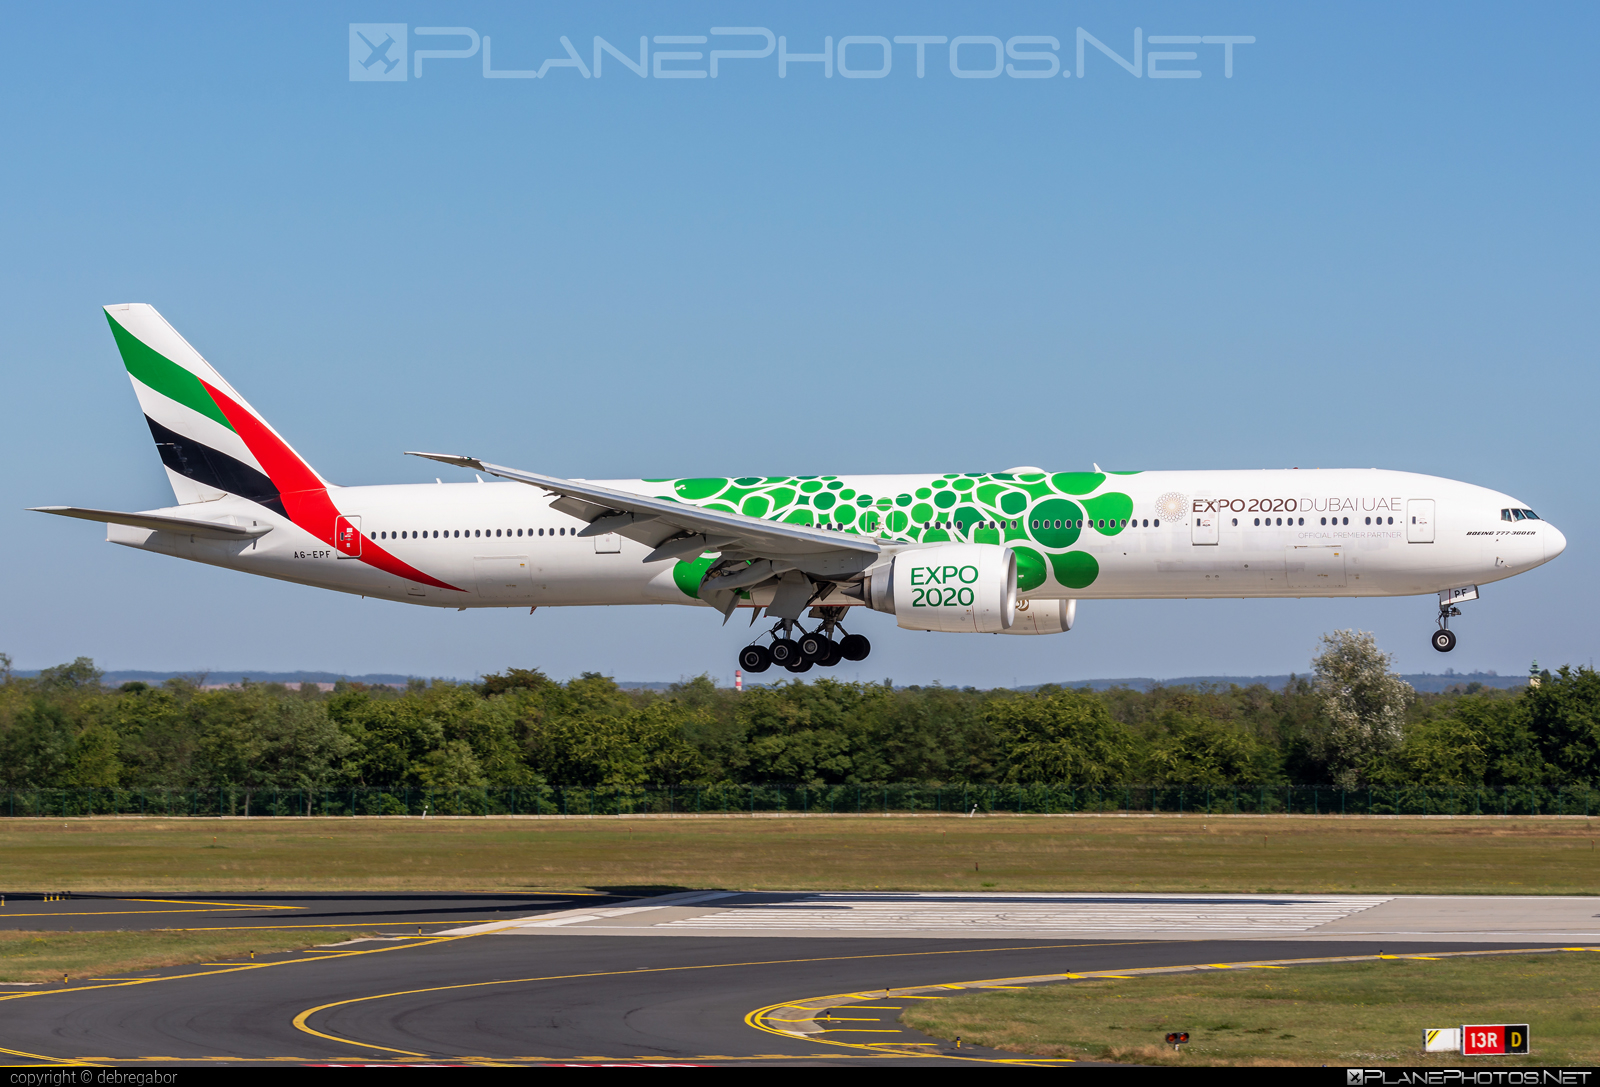 Boeing 777-300ER - A6-EPF operated by Emirates #b777 #b777er #boeing #boeing777 #emirates #tripleseven